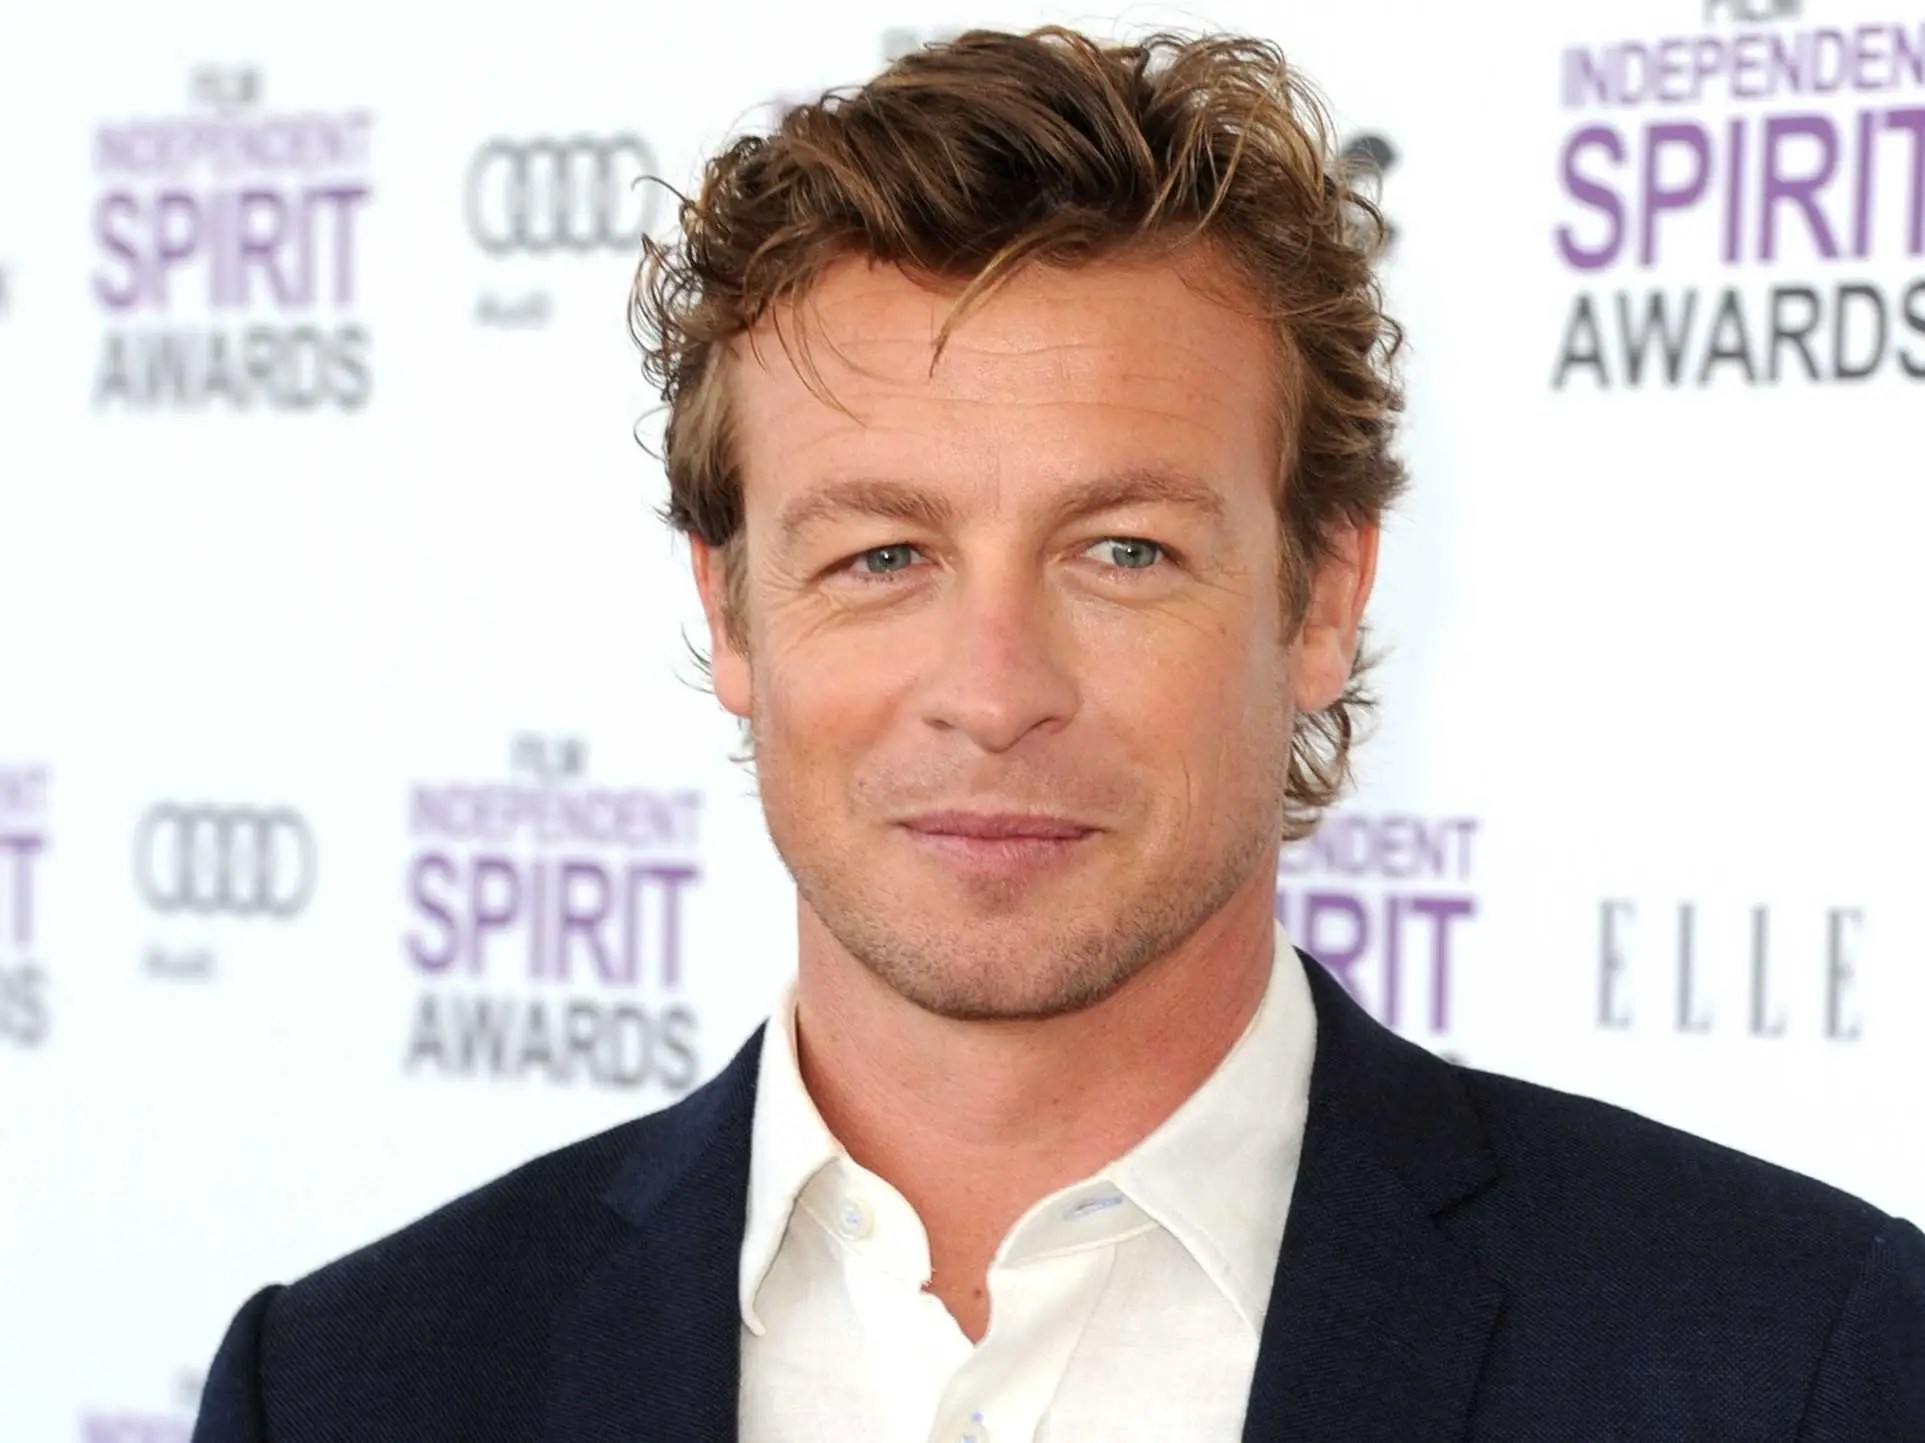 7. Simon Baker: $7.2 million